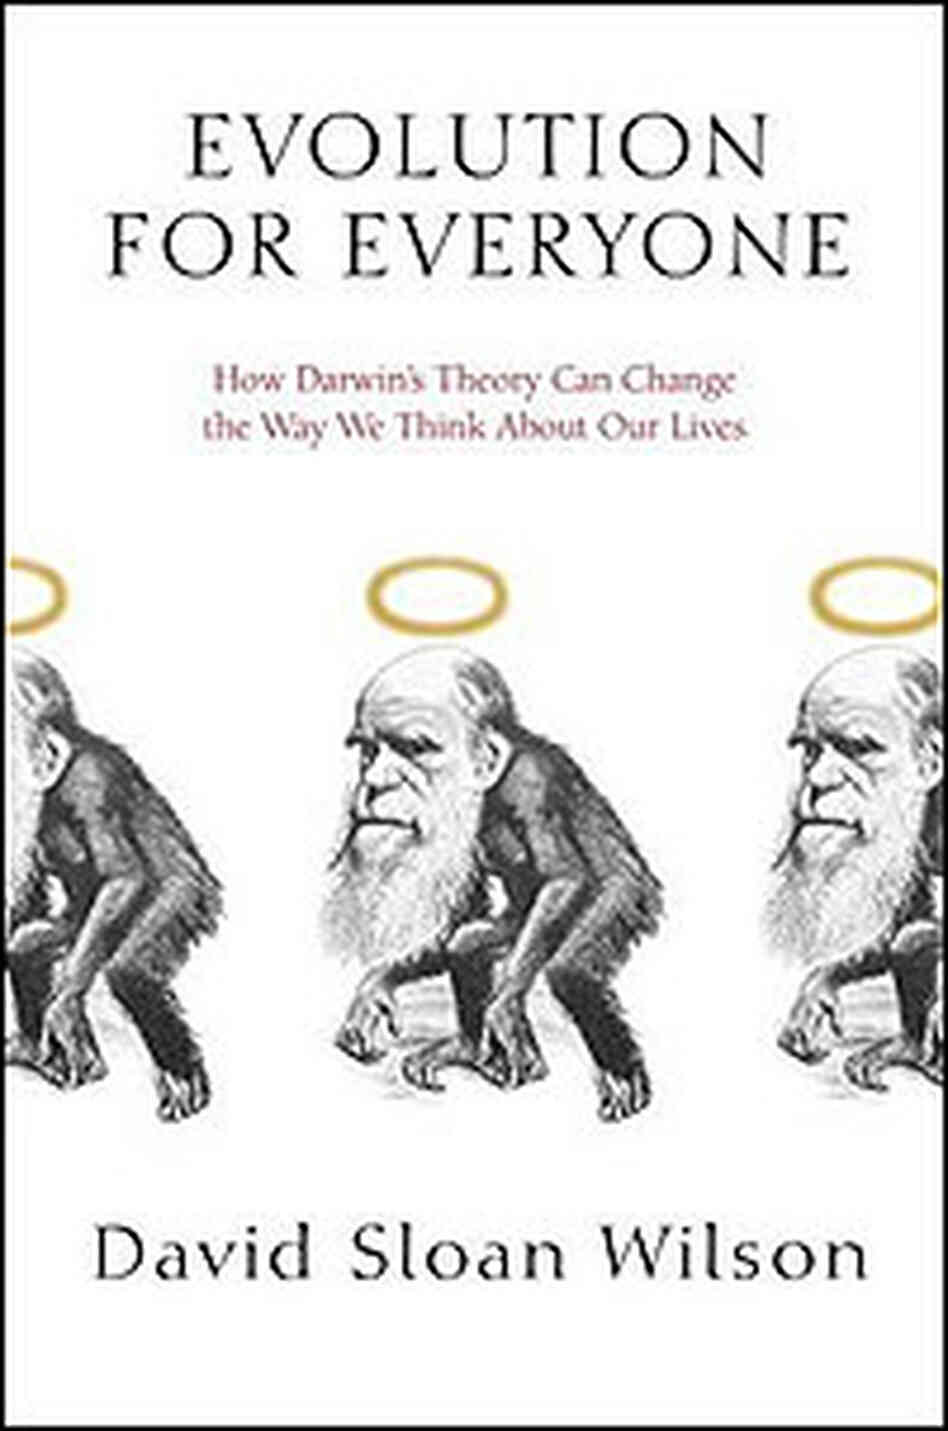 Cover Image: 'Evolution for Everyone'